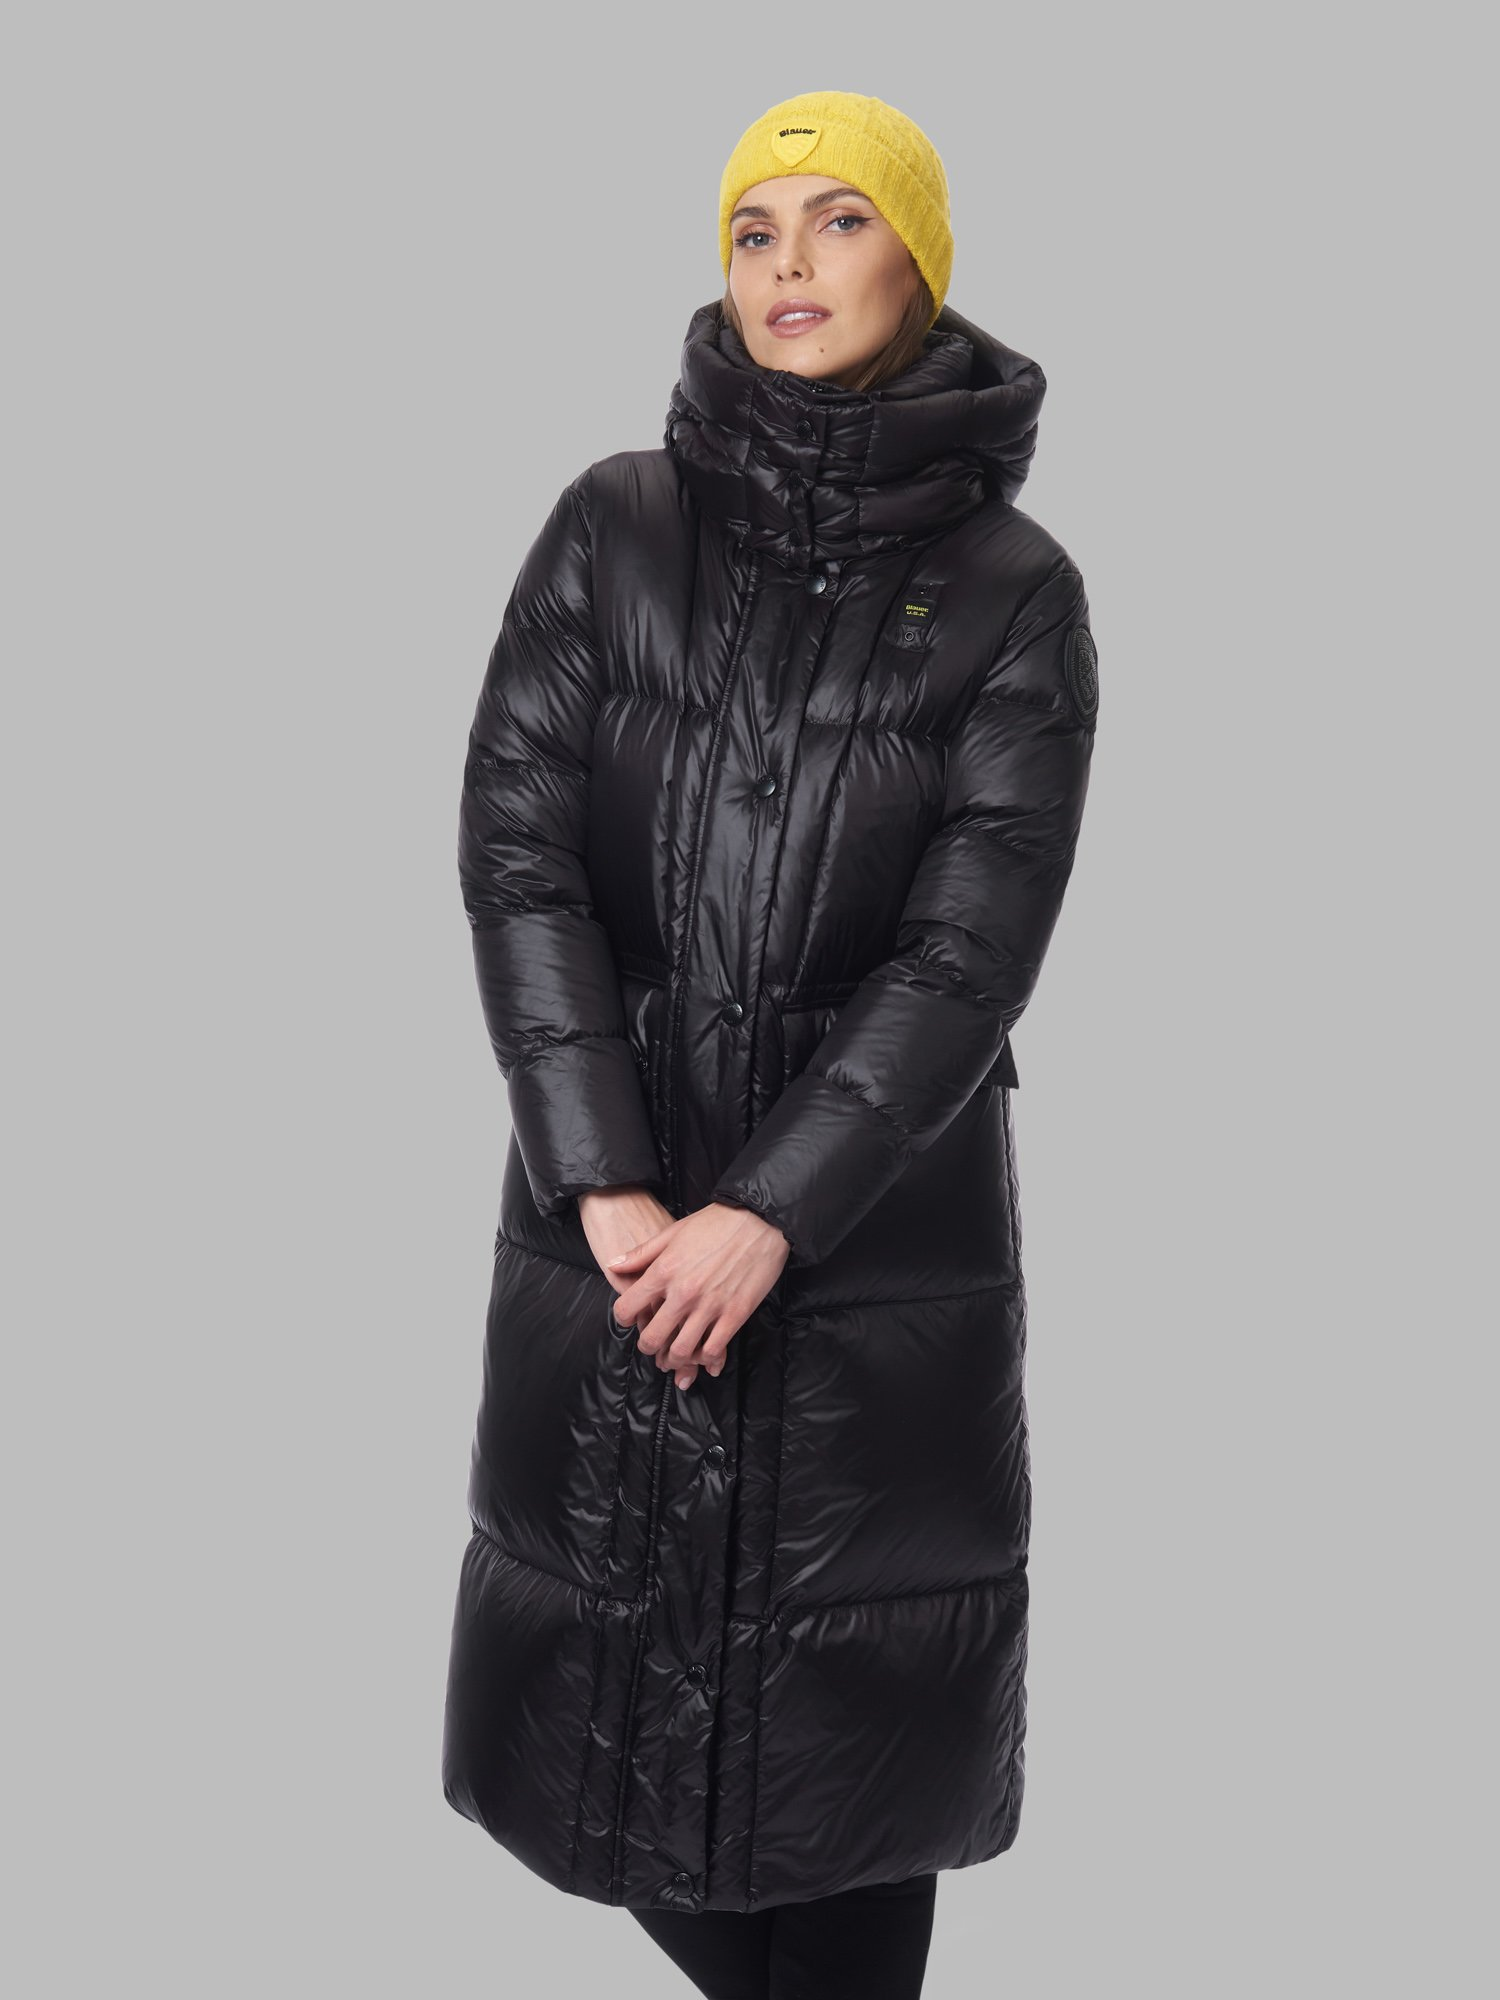 BERNICE LONG DOWN JACKET WITH POCKETS - Blauer